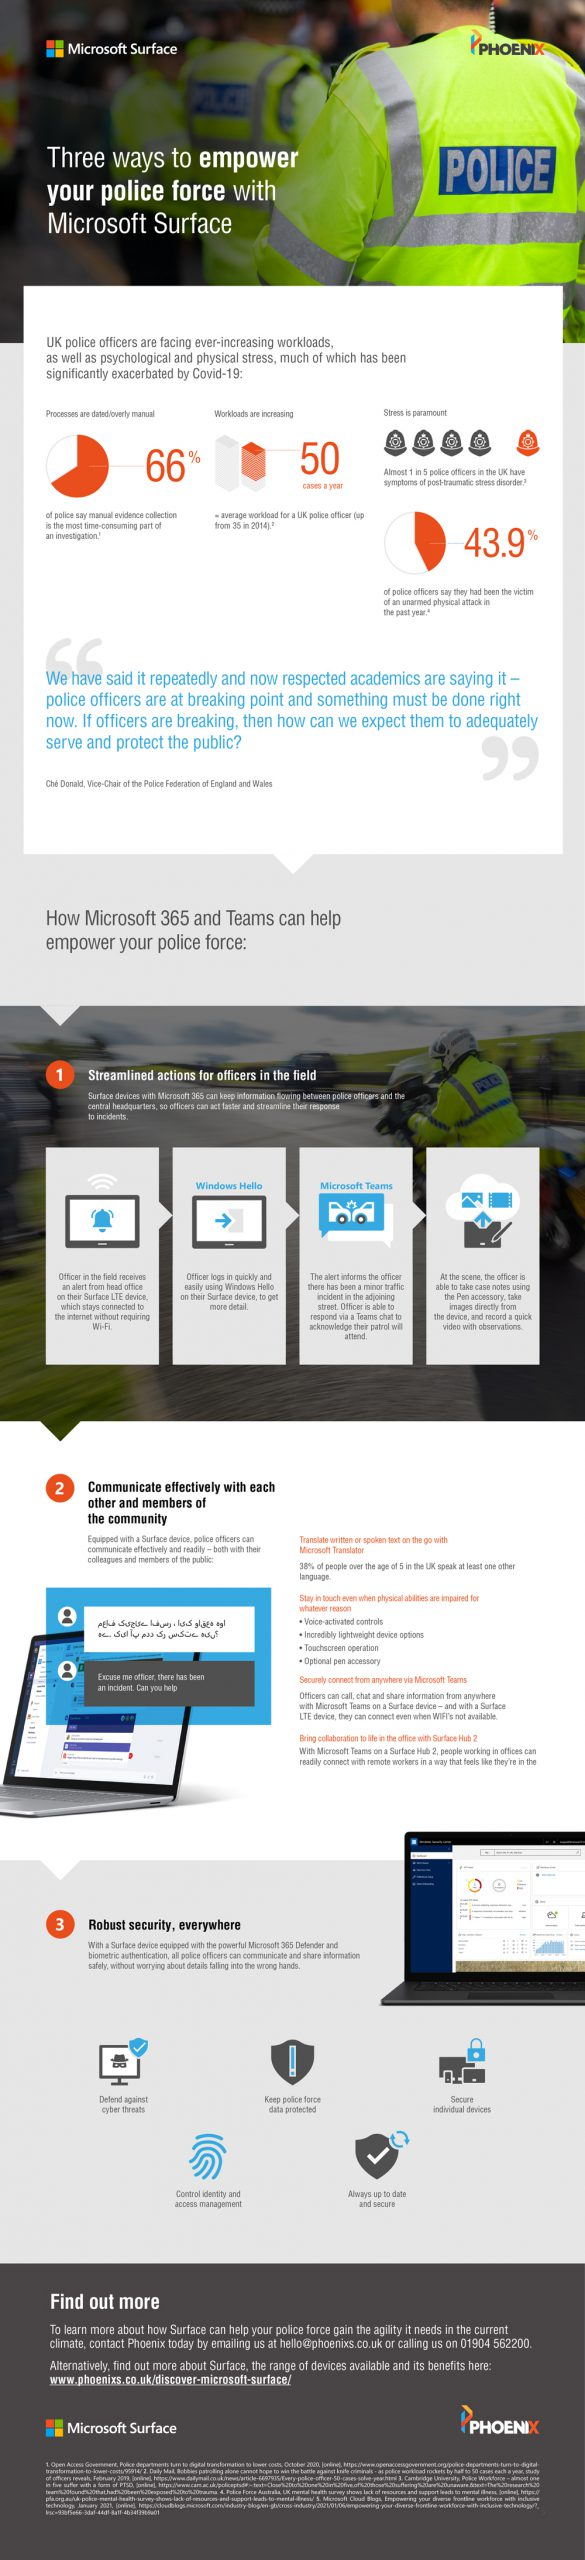 Microsoft Surface in Police Infographic